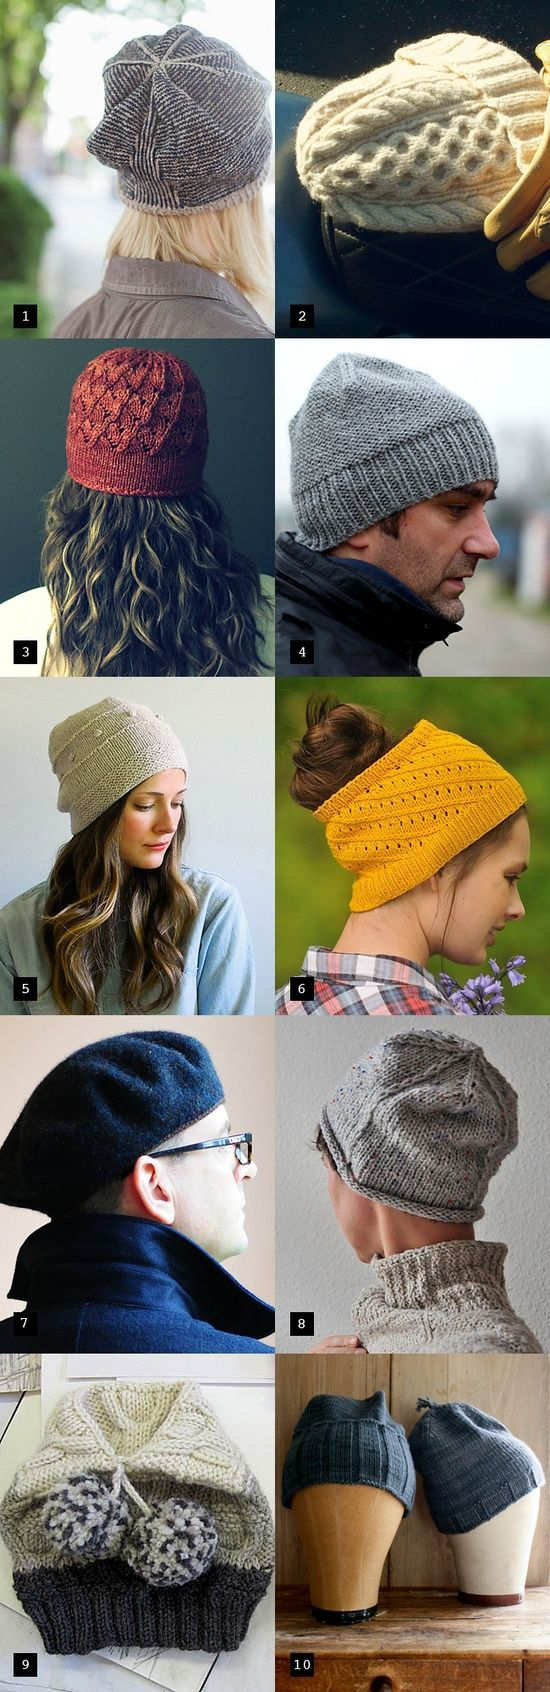 These are all great patterns. Holiday knitting cheat sheet: a hat pattern for every head.